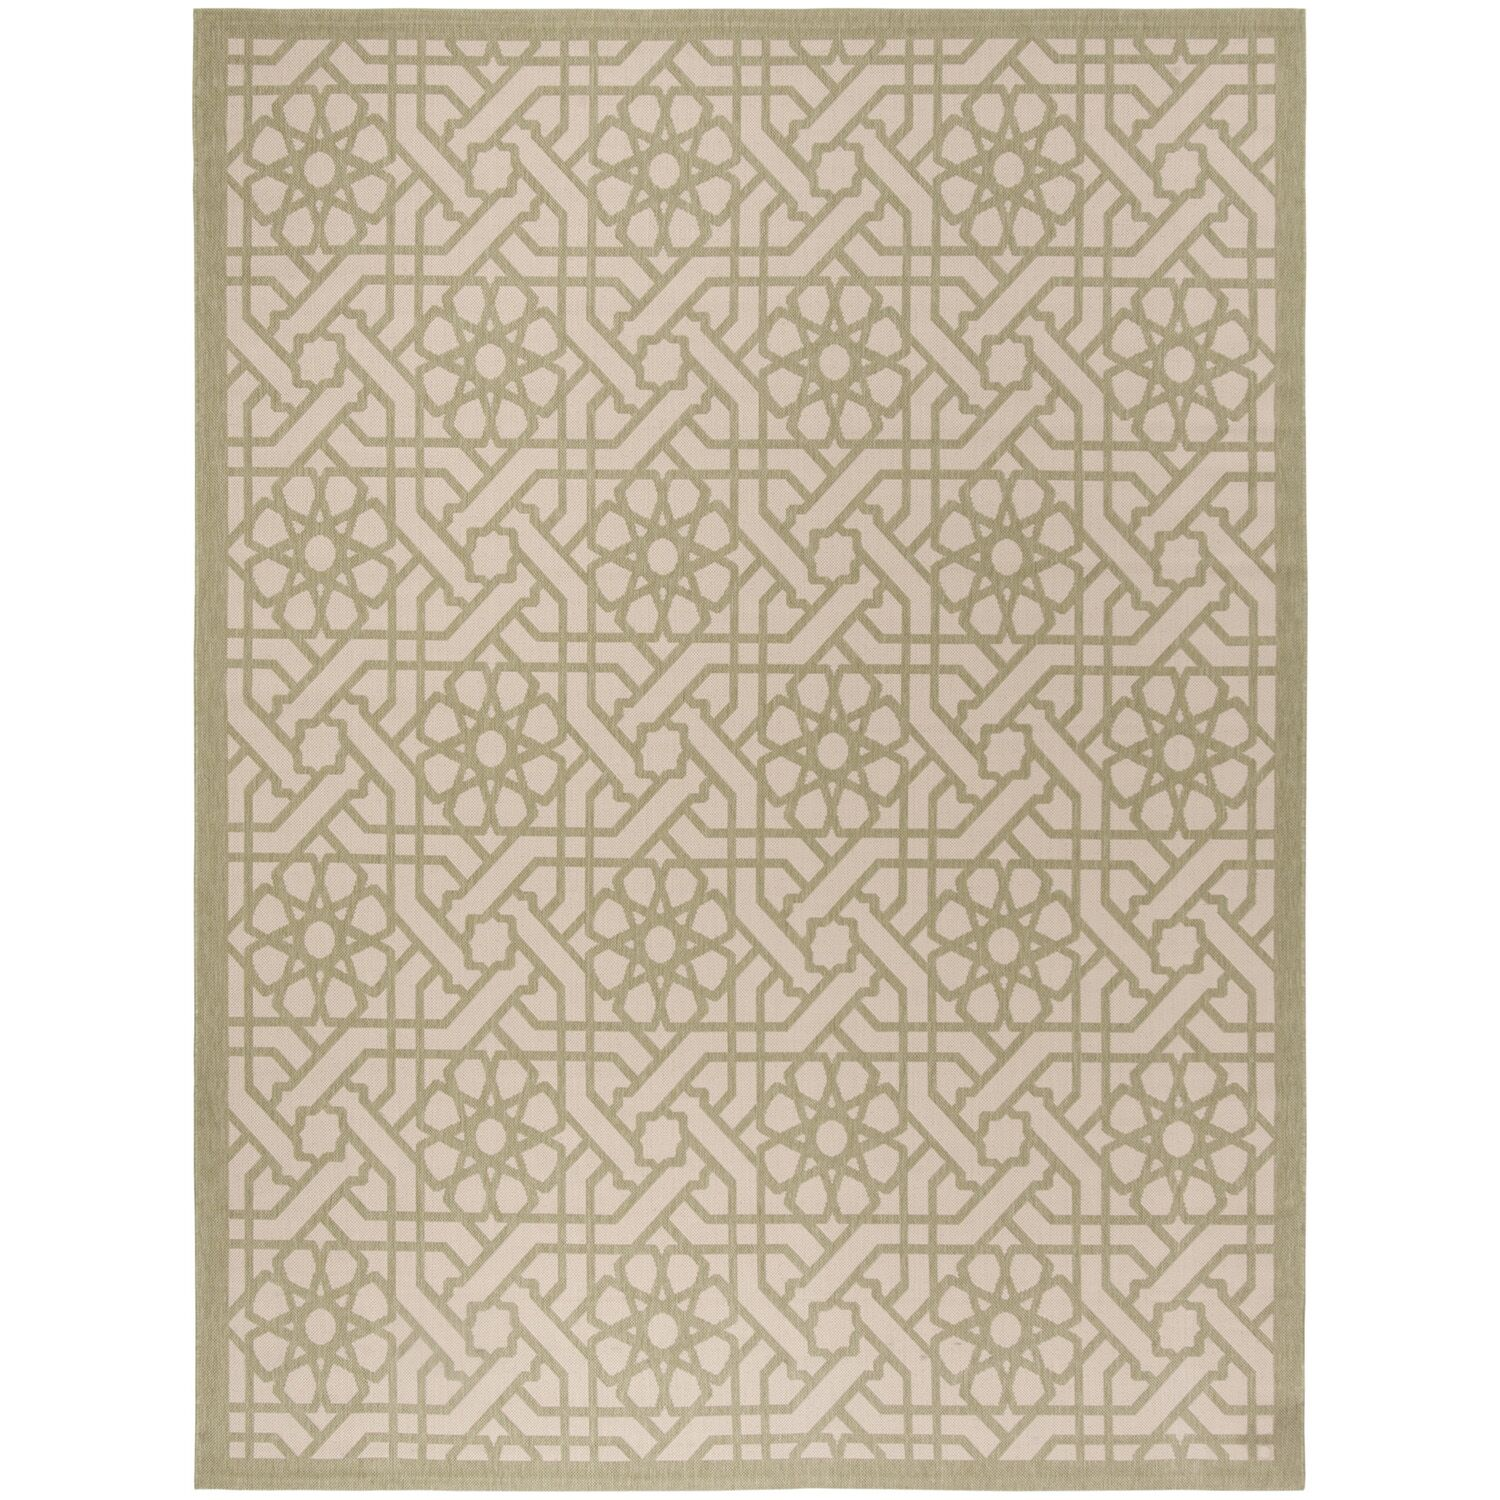 Triumph Lily Pad Area Rug Rug Size: Rectangle 8' x 11'2